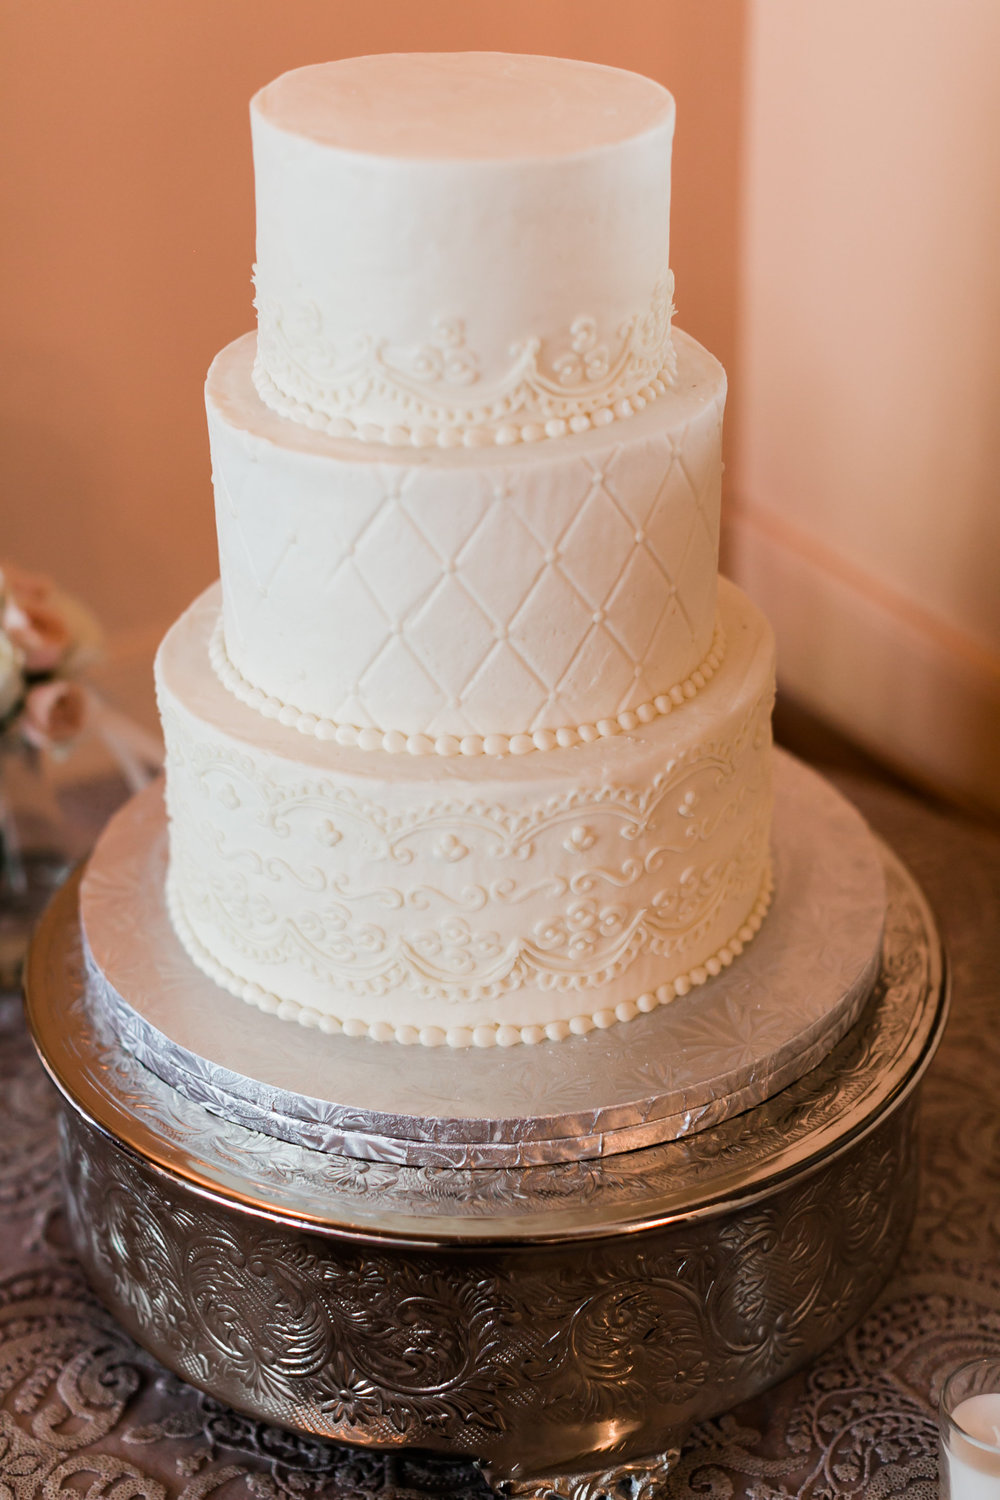 Wedding Cake | Edible Art Bakery of Raleigh